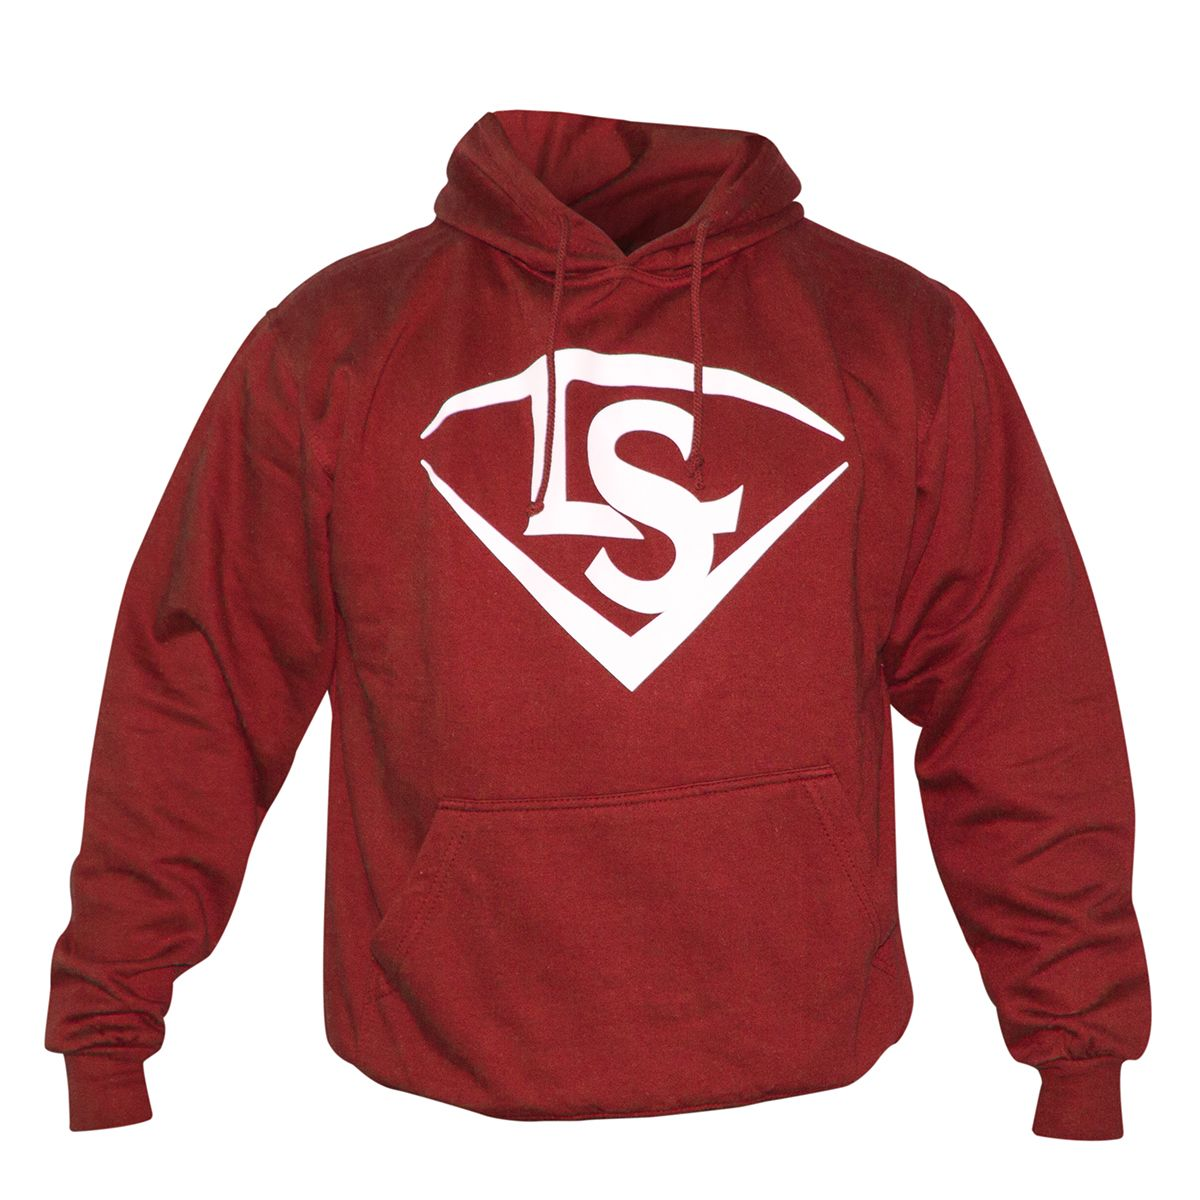 LS HOODIE - red/white